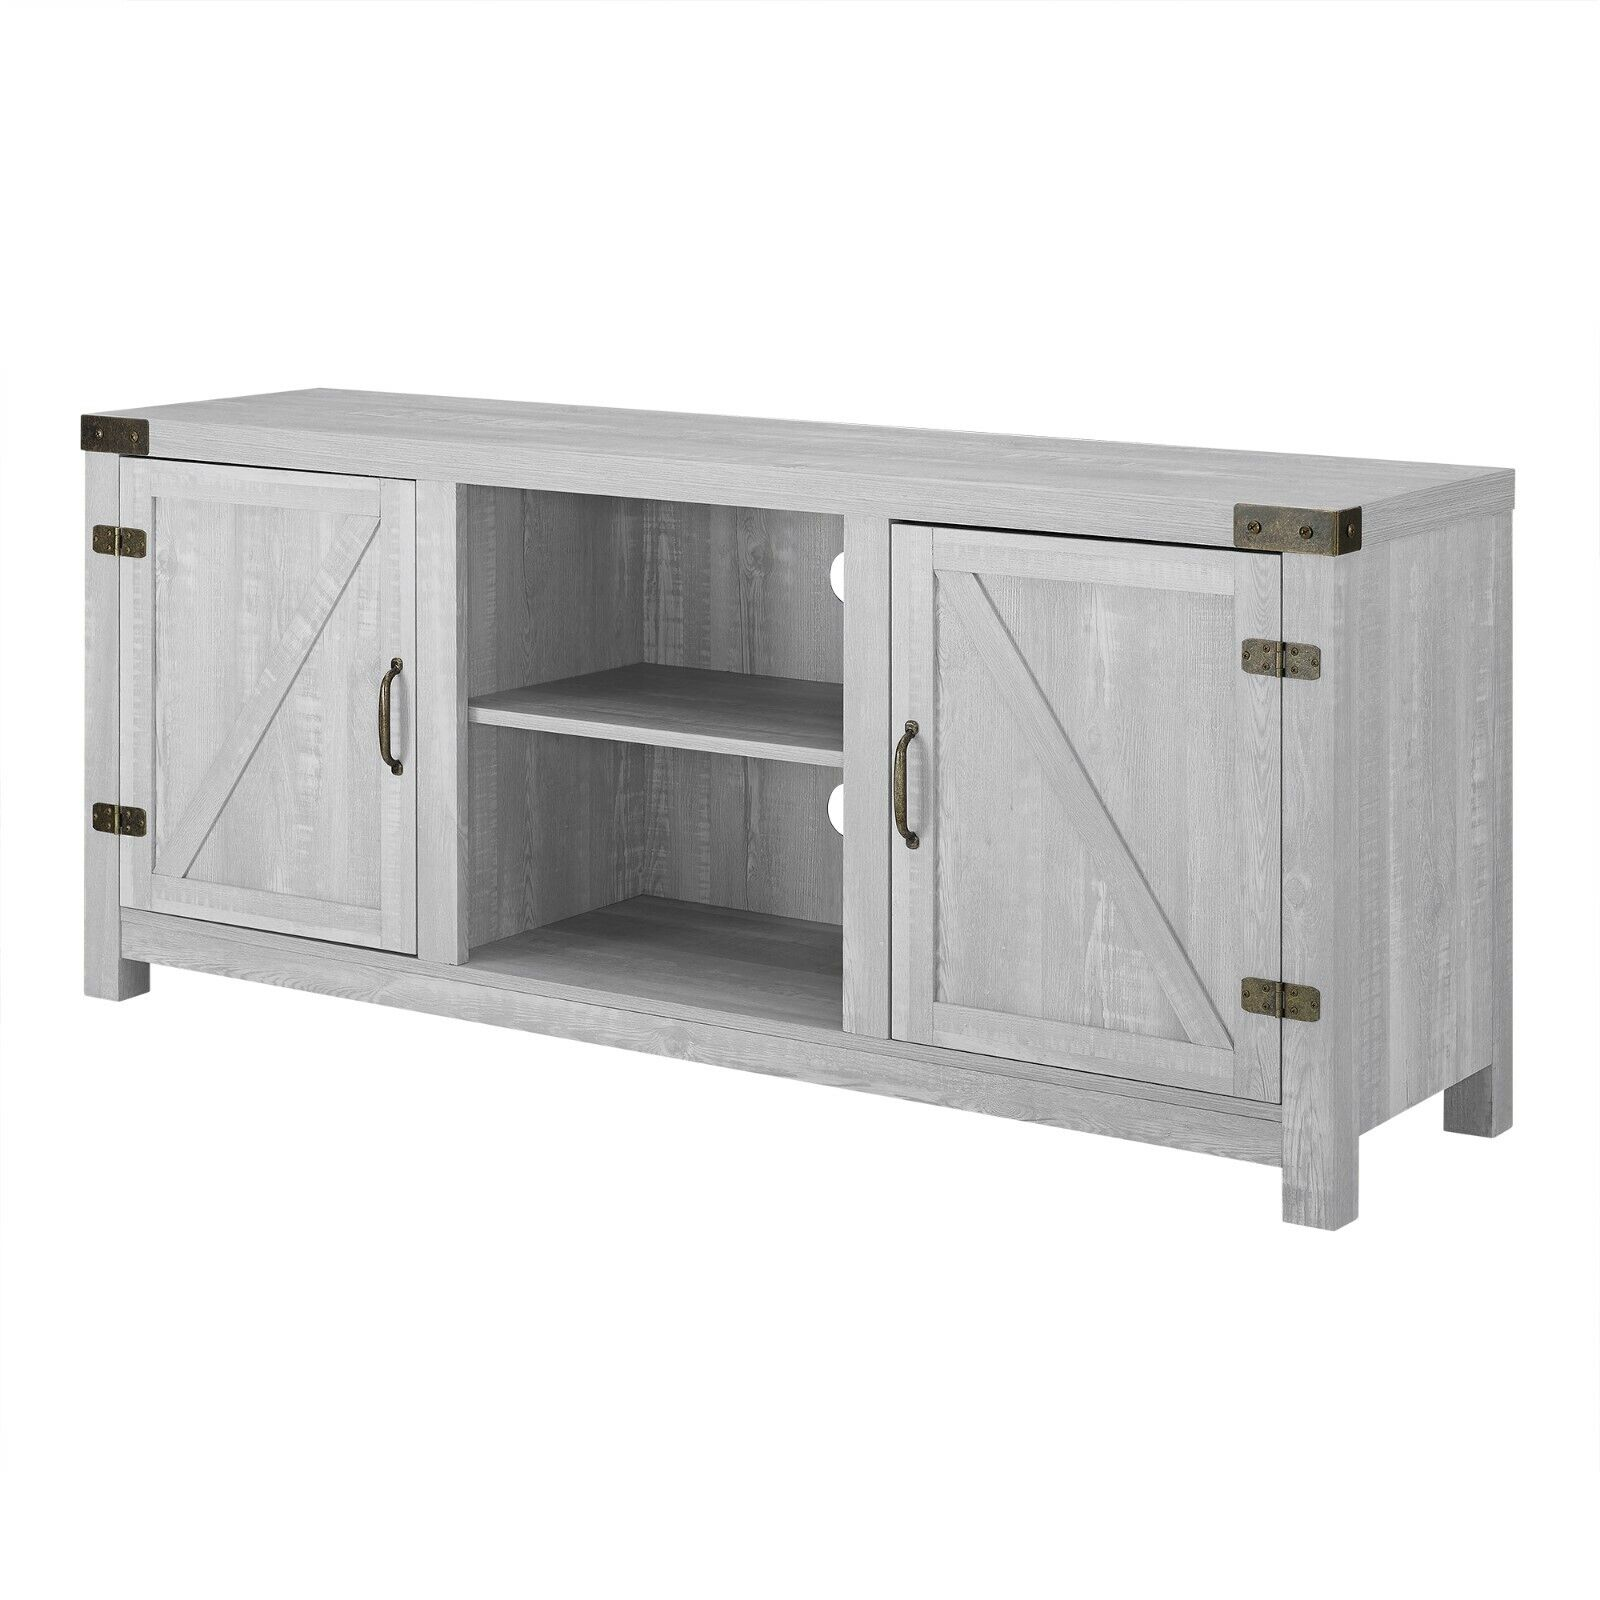 Manor Park 58 inch to 65 inch Barn Door TV Stand with Side D